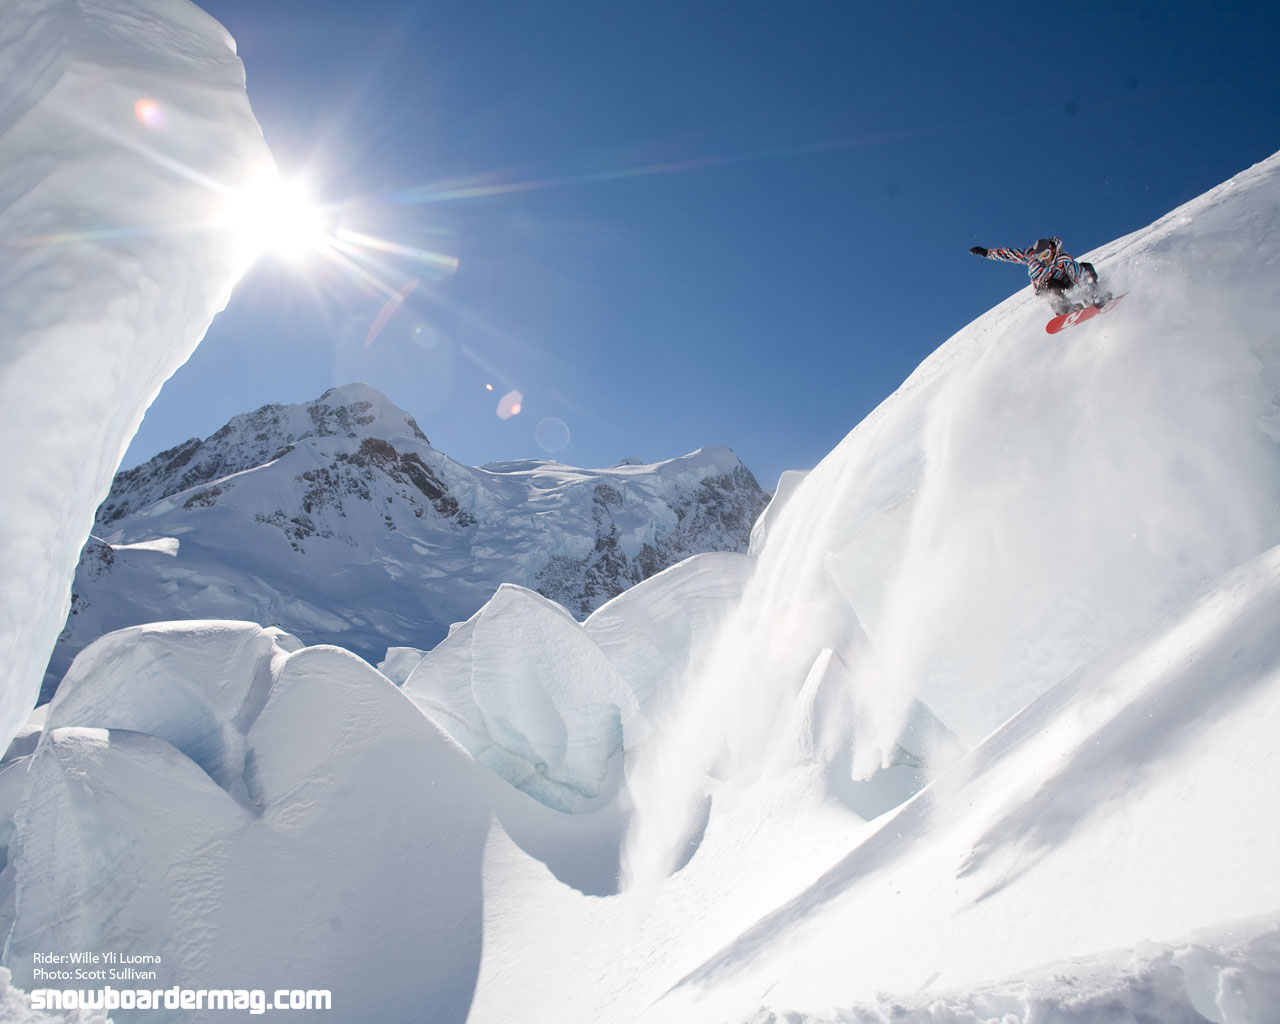 snowboarding wallpapers